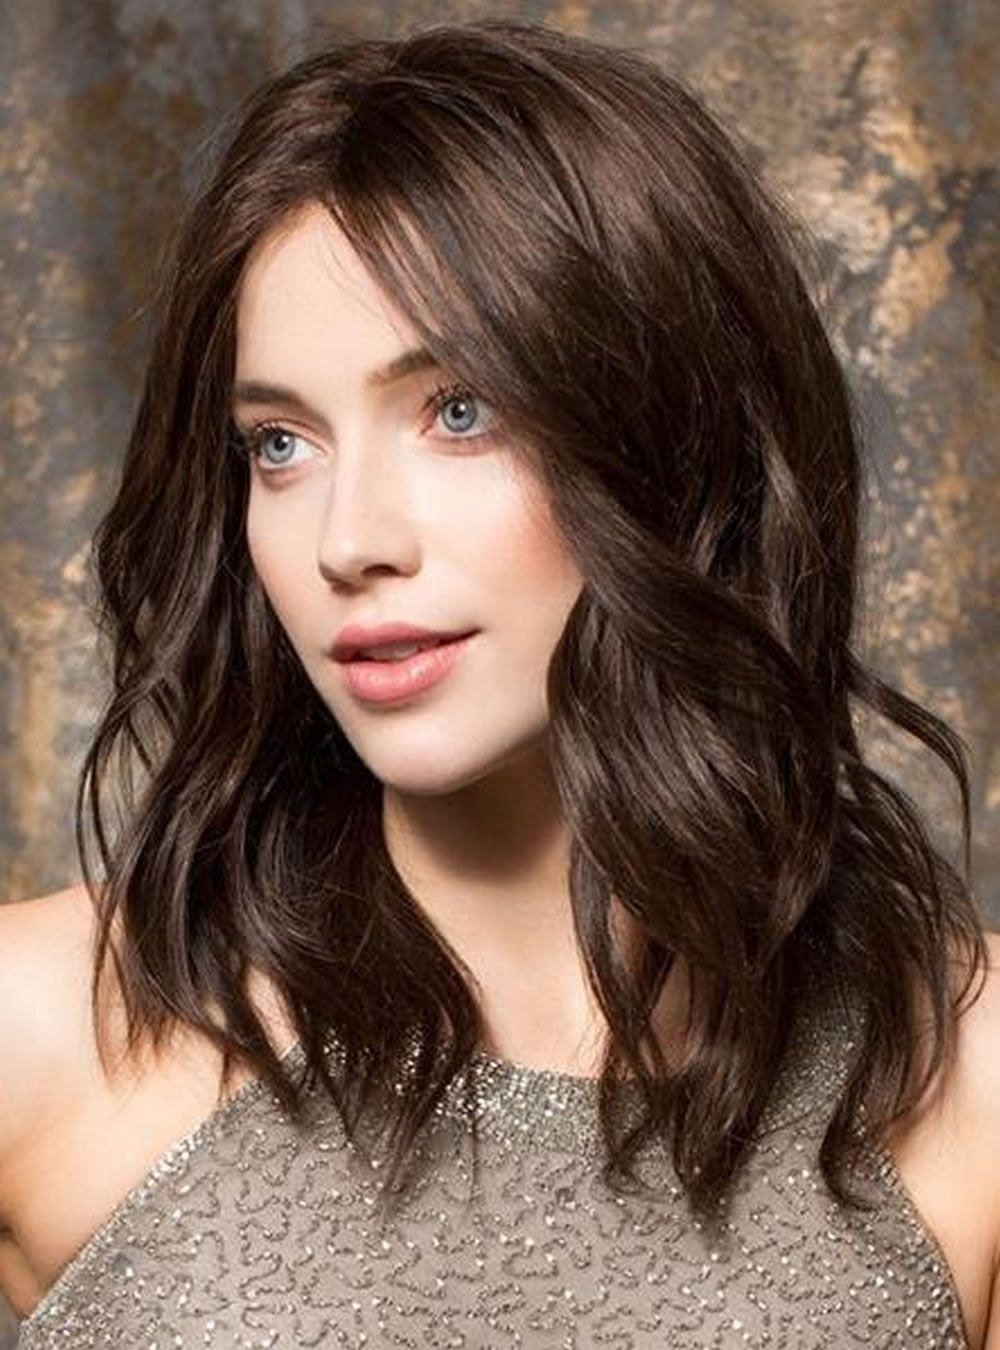 Afbeeldingsresultaat Voor Medium Length Hair 2019 New Haircut